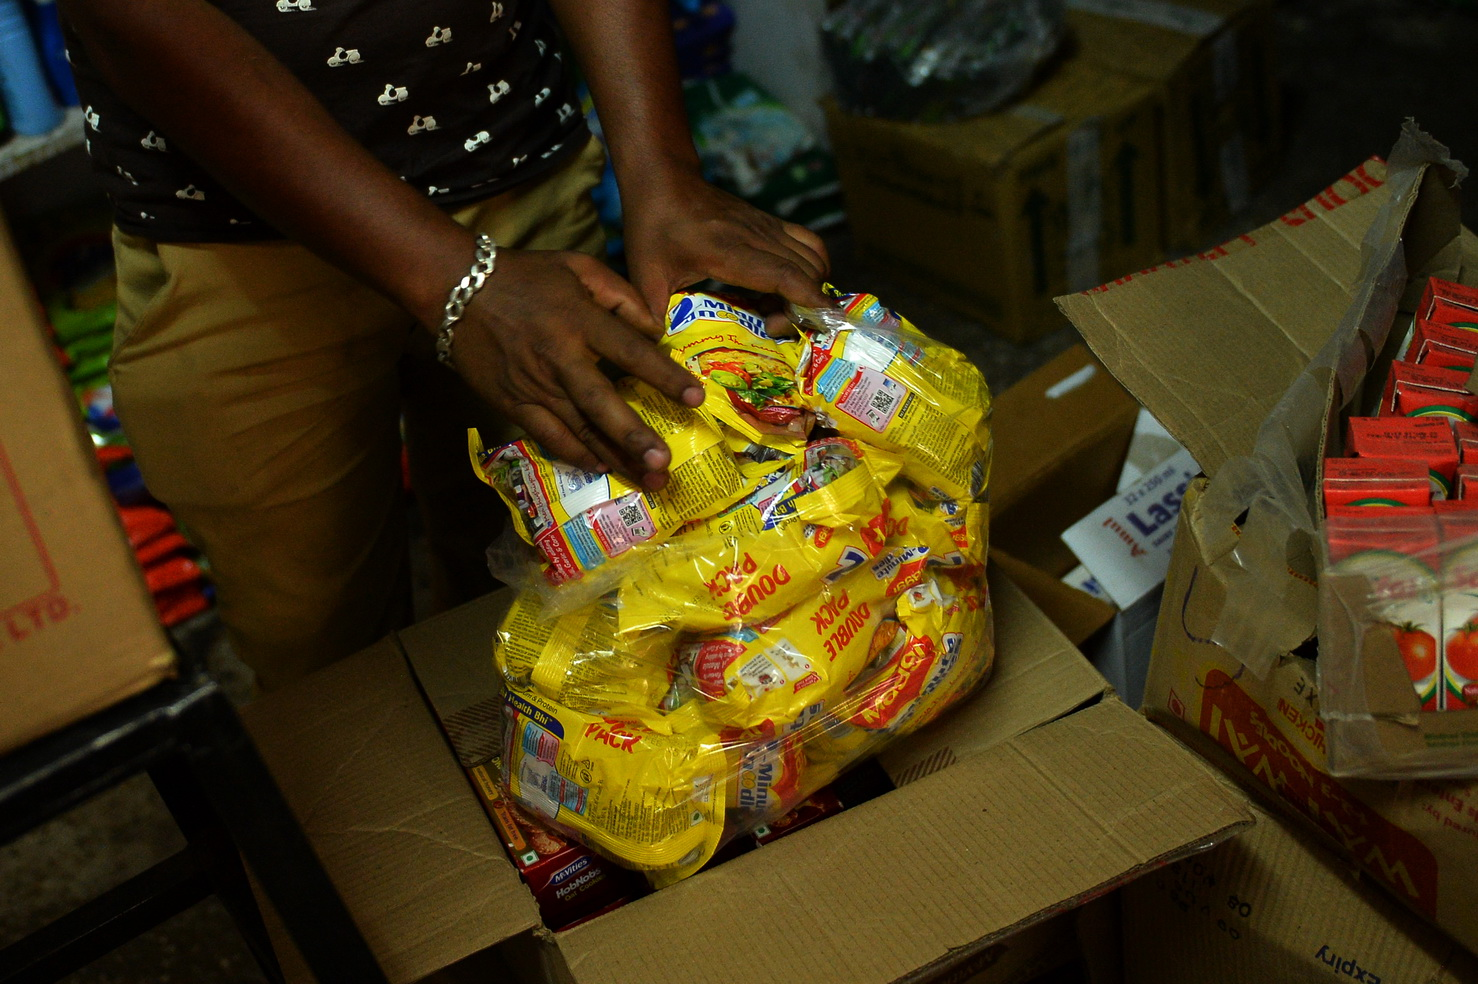 In this photograph taken on June 17, 2015, an Indian shopkeeper puts packs of Nestle 'Maggi' instant noodles into a plastic bag in his shop in New Delhi.  Nestle chief Paul Bulcke said that he wanted to see its hugely popular Maggi brand of instant noodles back on the Indian market as soon as possible after it was banned over a health scare. India's food safety regulator on June 5 banned the product after tests that it said showed the noodles contained excessive levels of lead.  AFP PHOTO/Chandan KHANNA